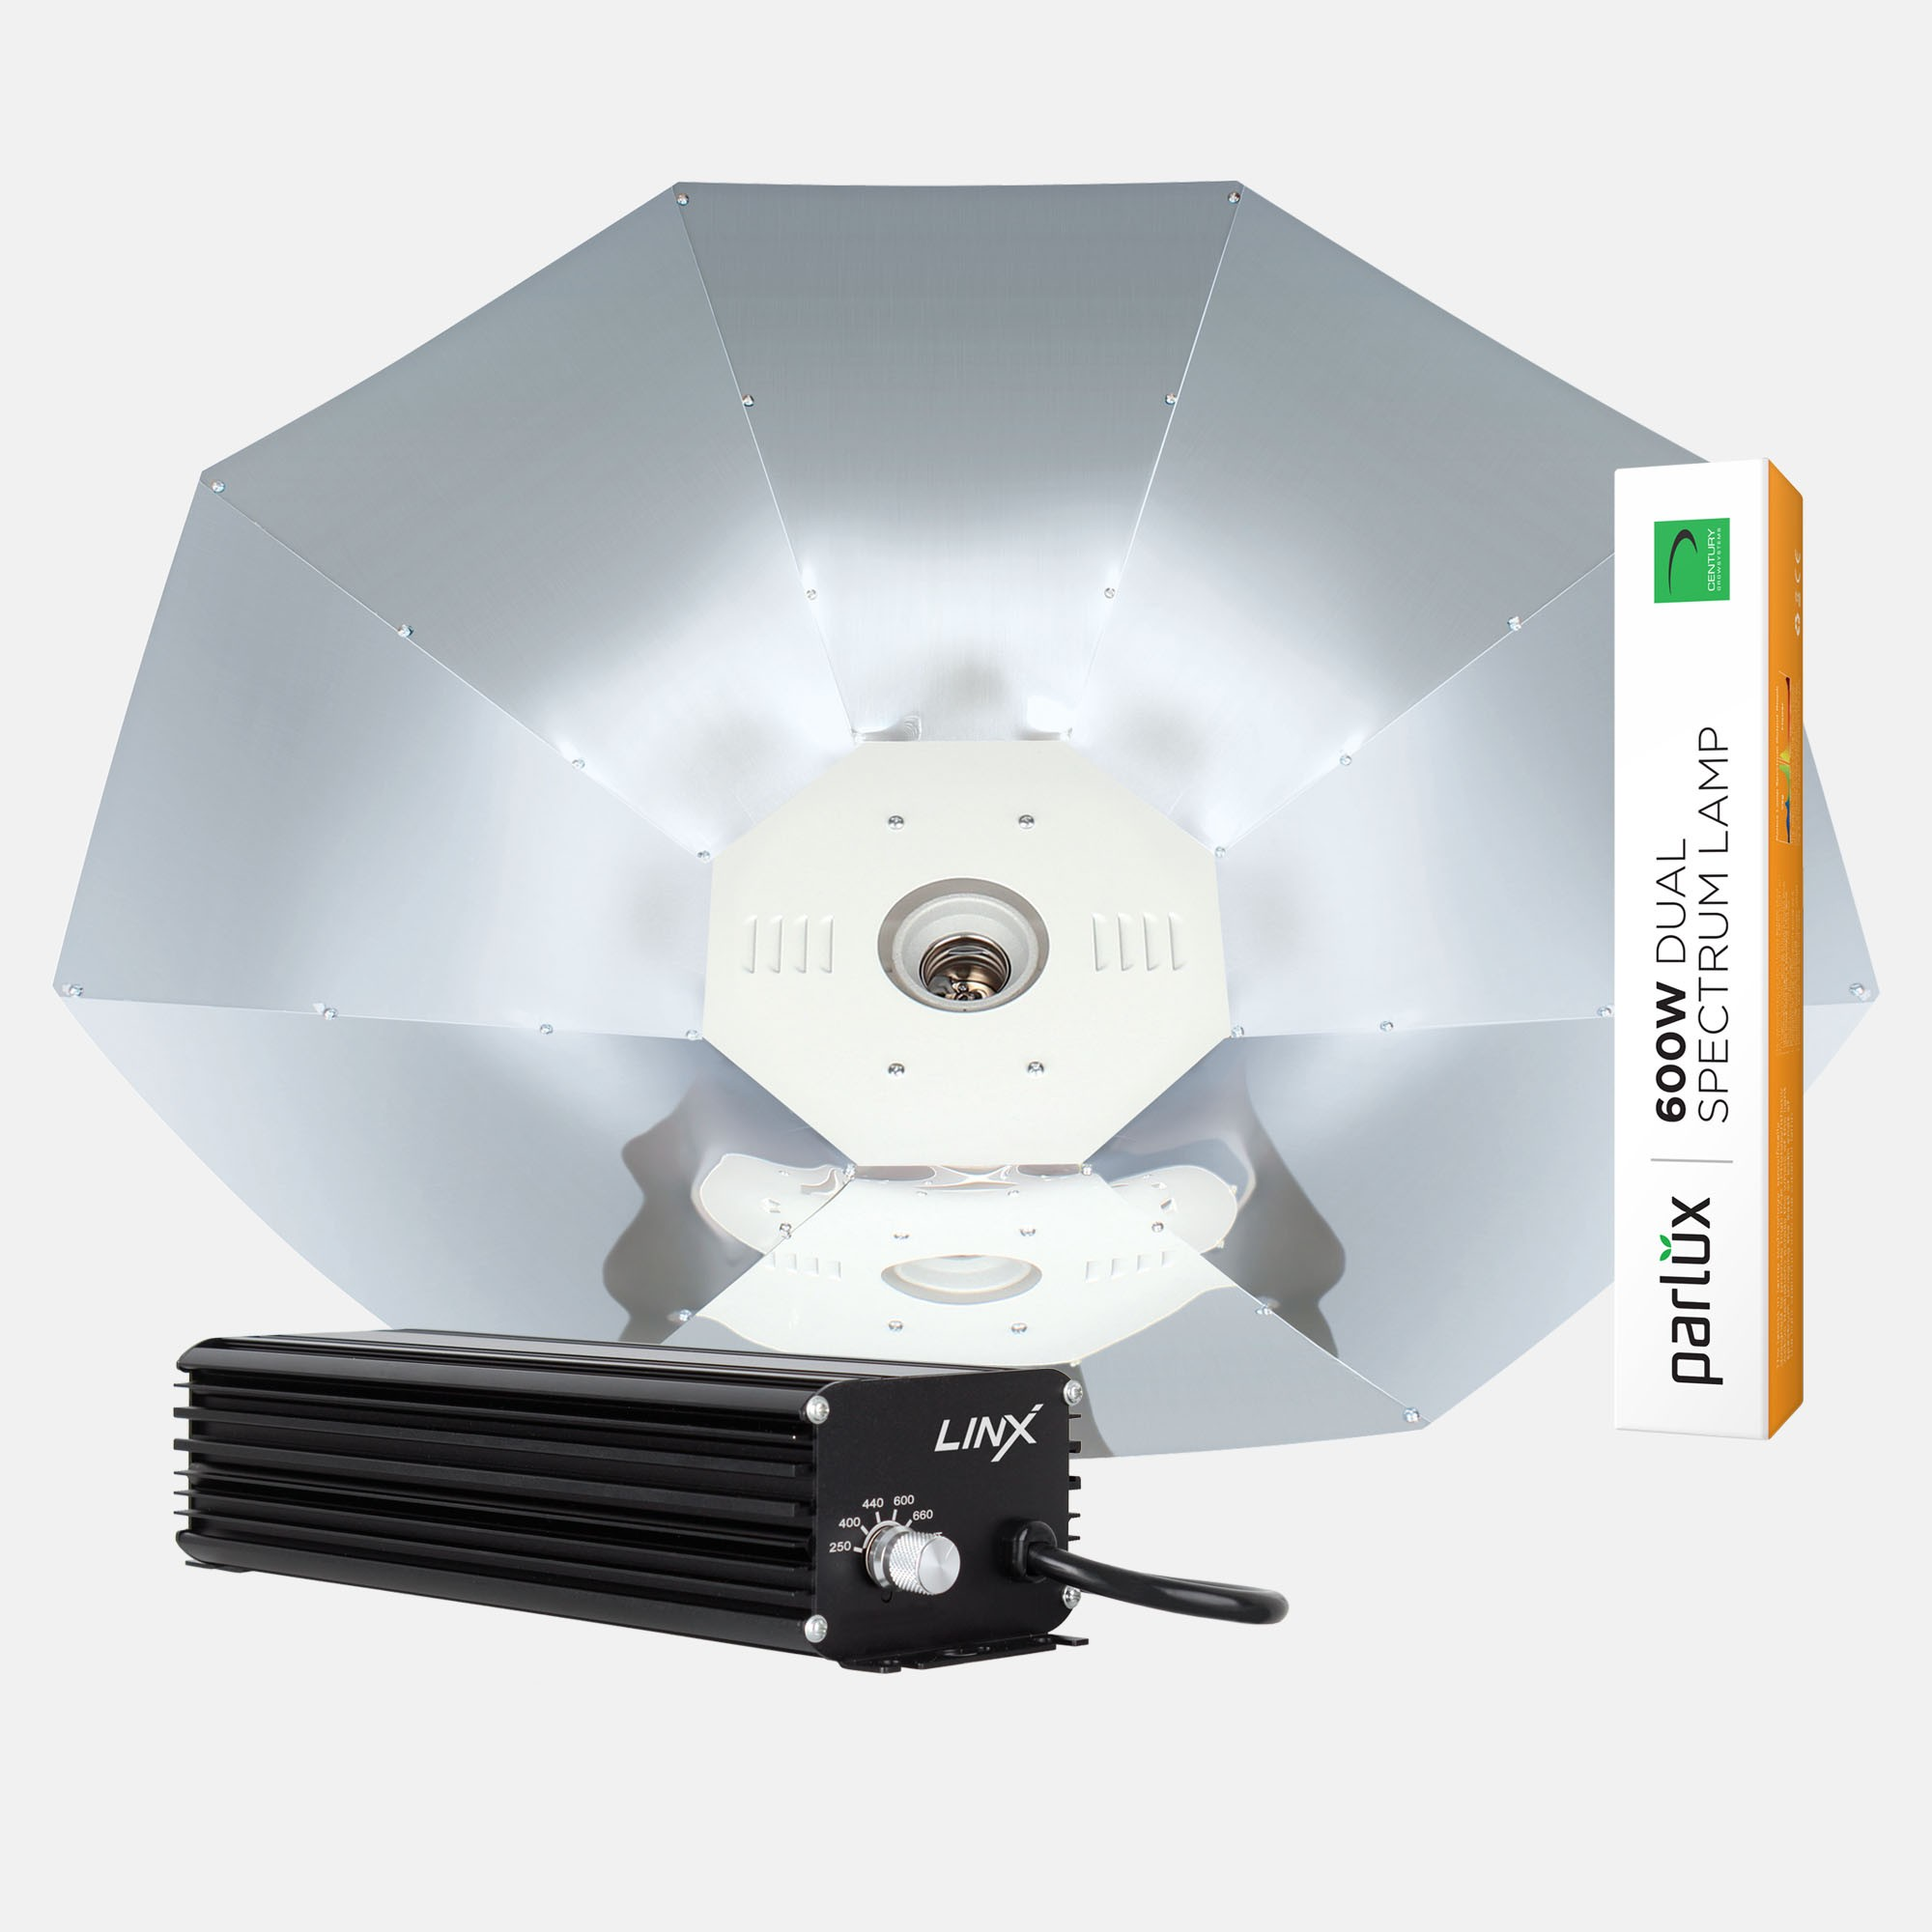 Linx Digital 600W Parabolic Kits